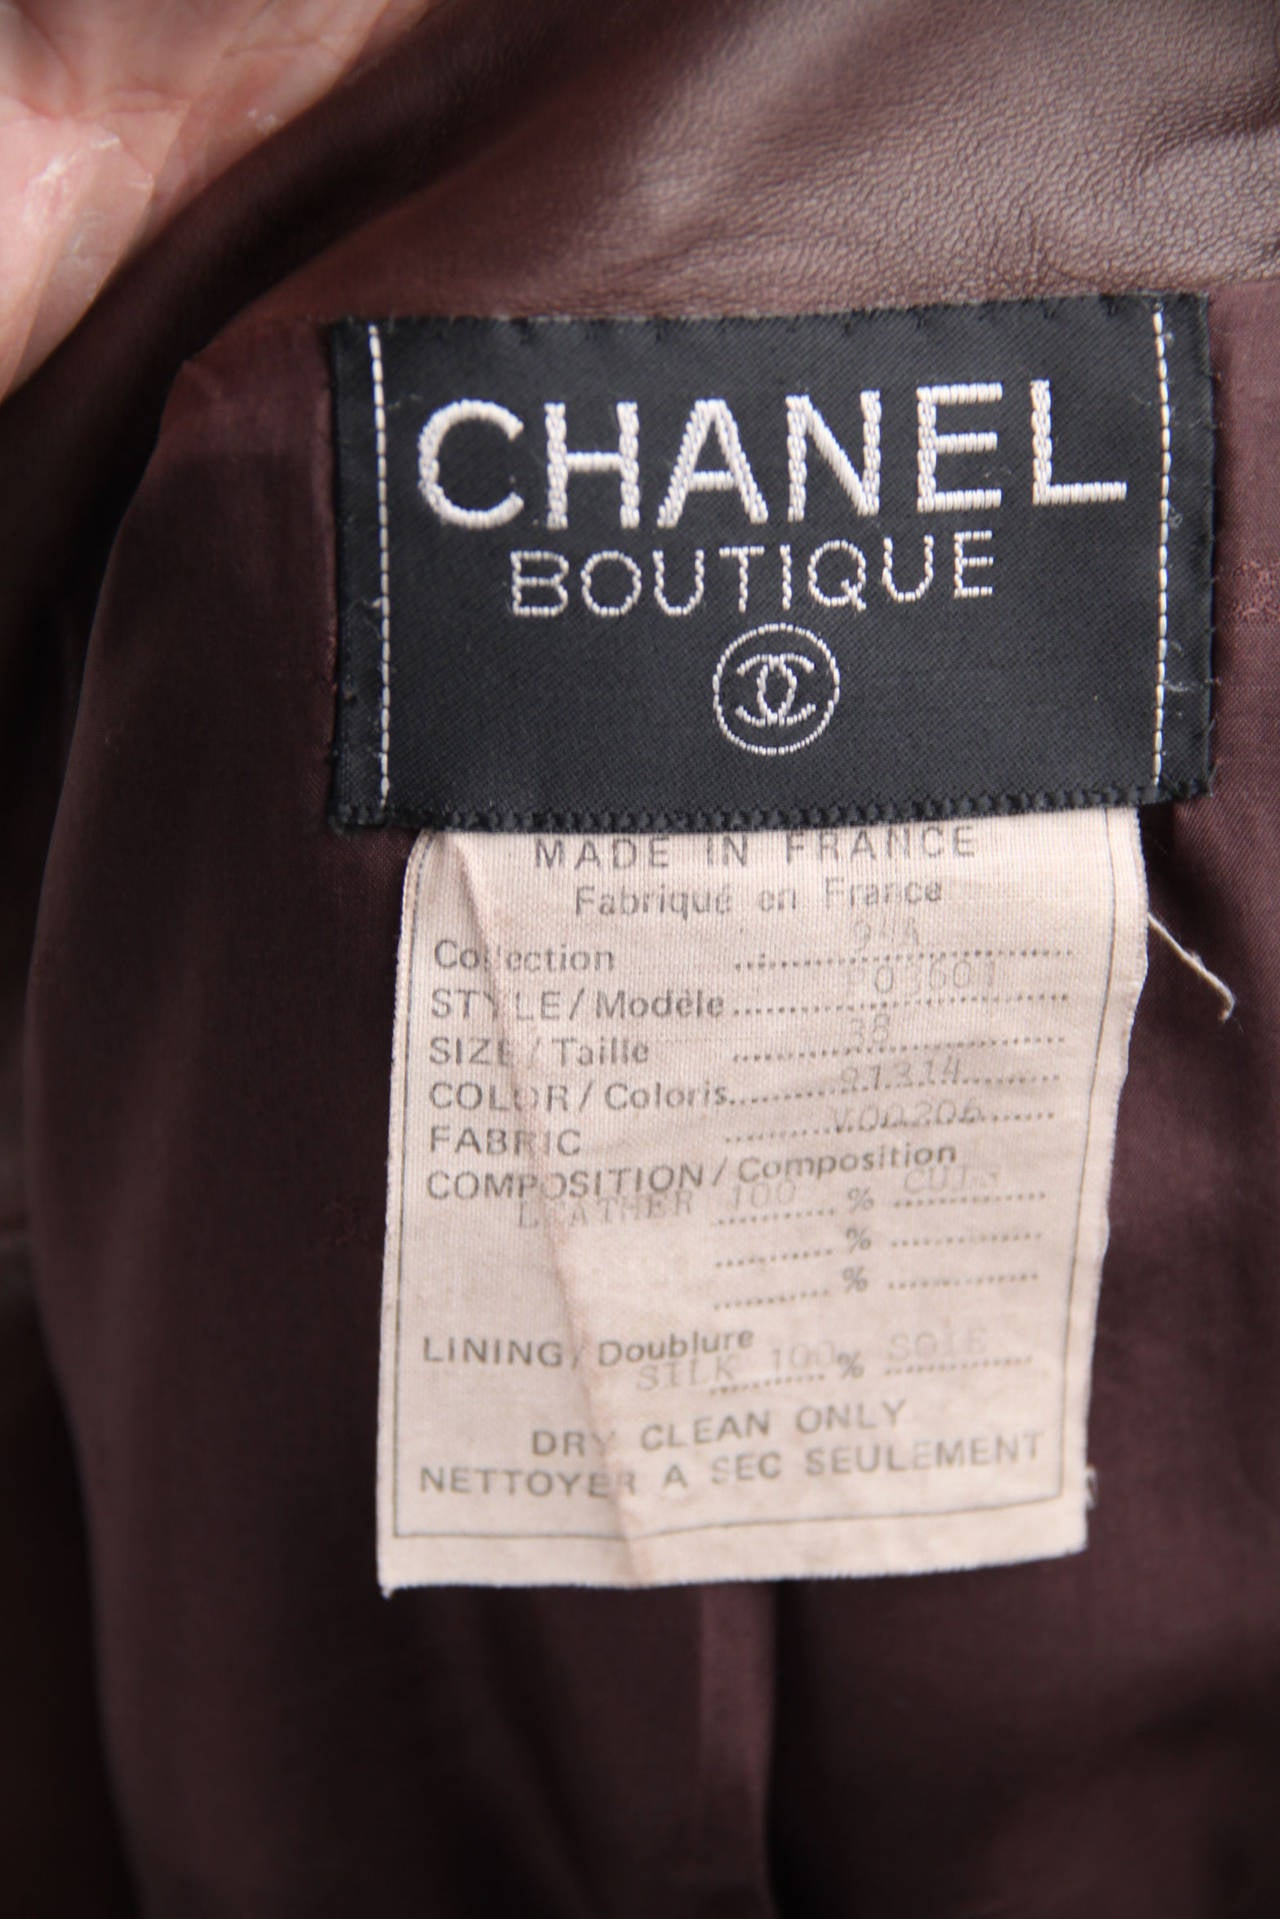 CHANEL BOUTIQUE VINTAGE Chocolate Brown LEATHER JACKET Blazer SIZE 38 FR 7